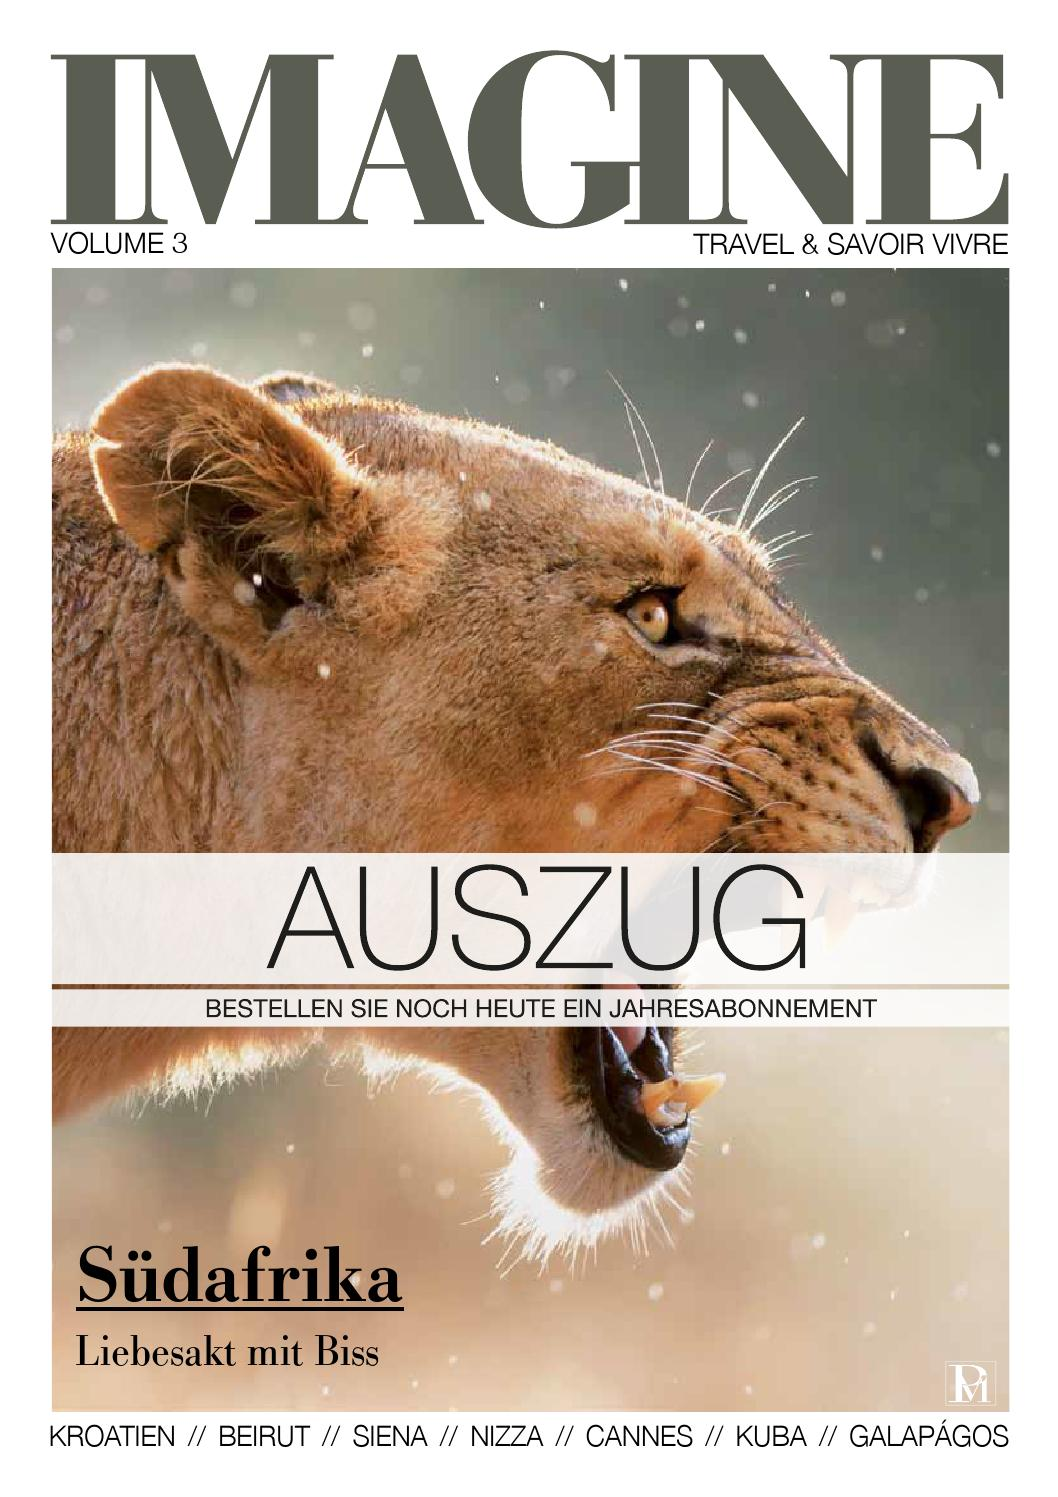 IMAGINE 03/11 Volume 3 Auszug by rundschauMEDIEN AG - issuu